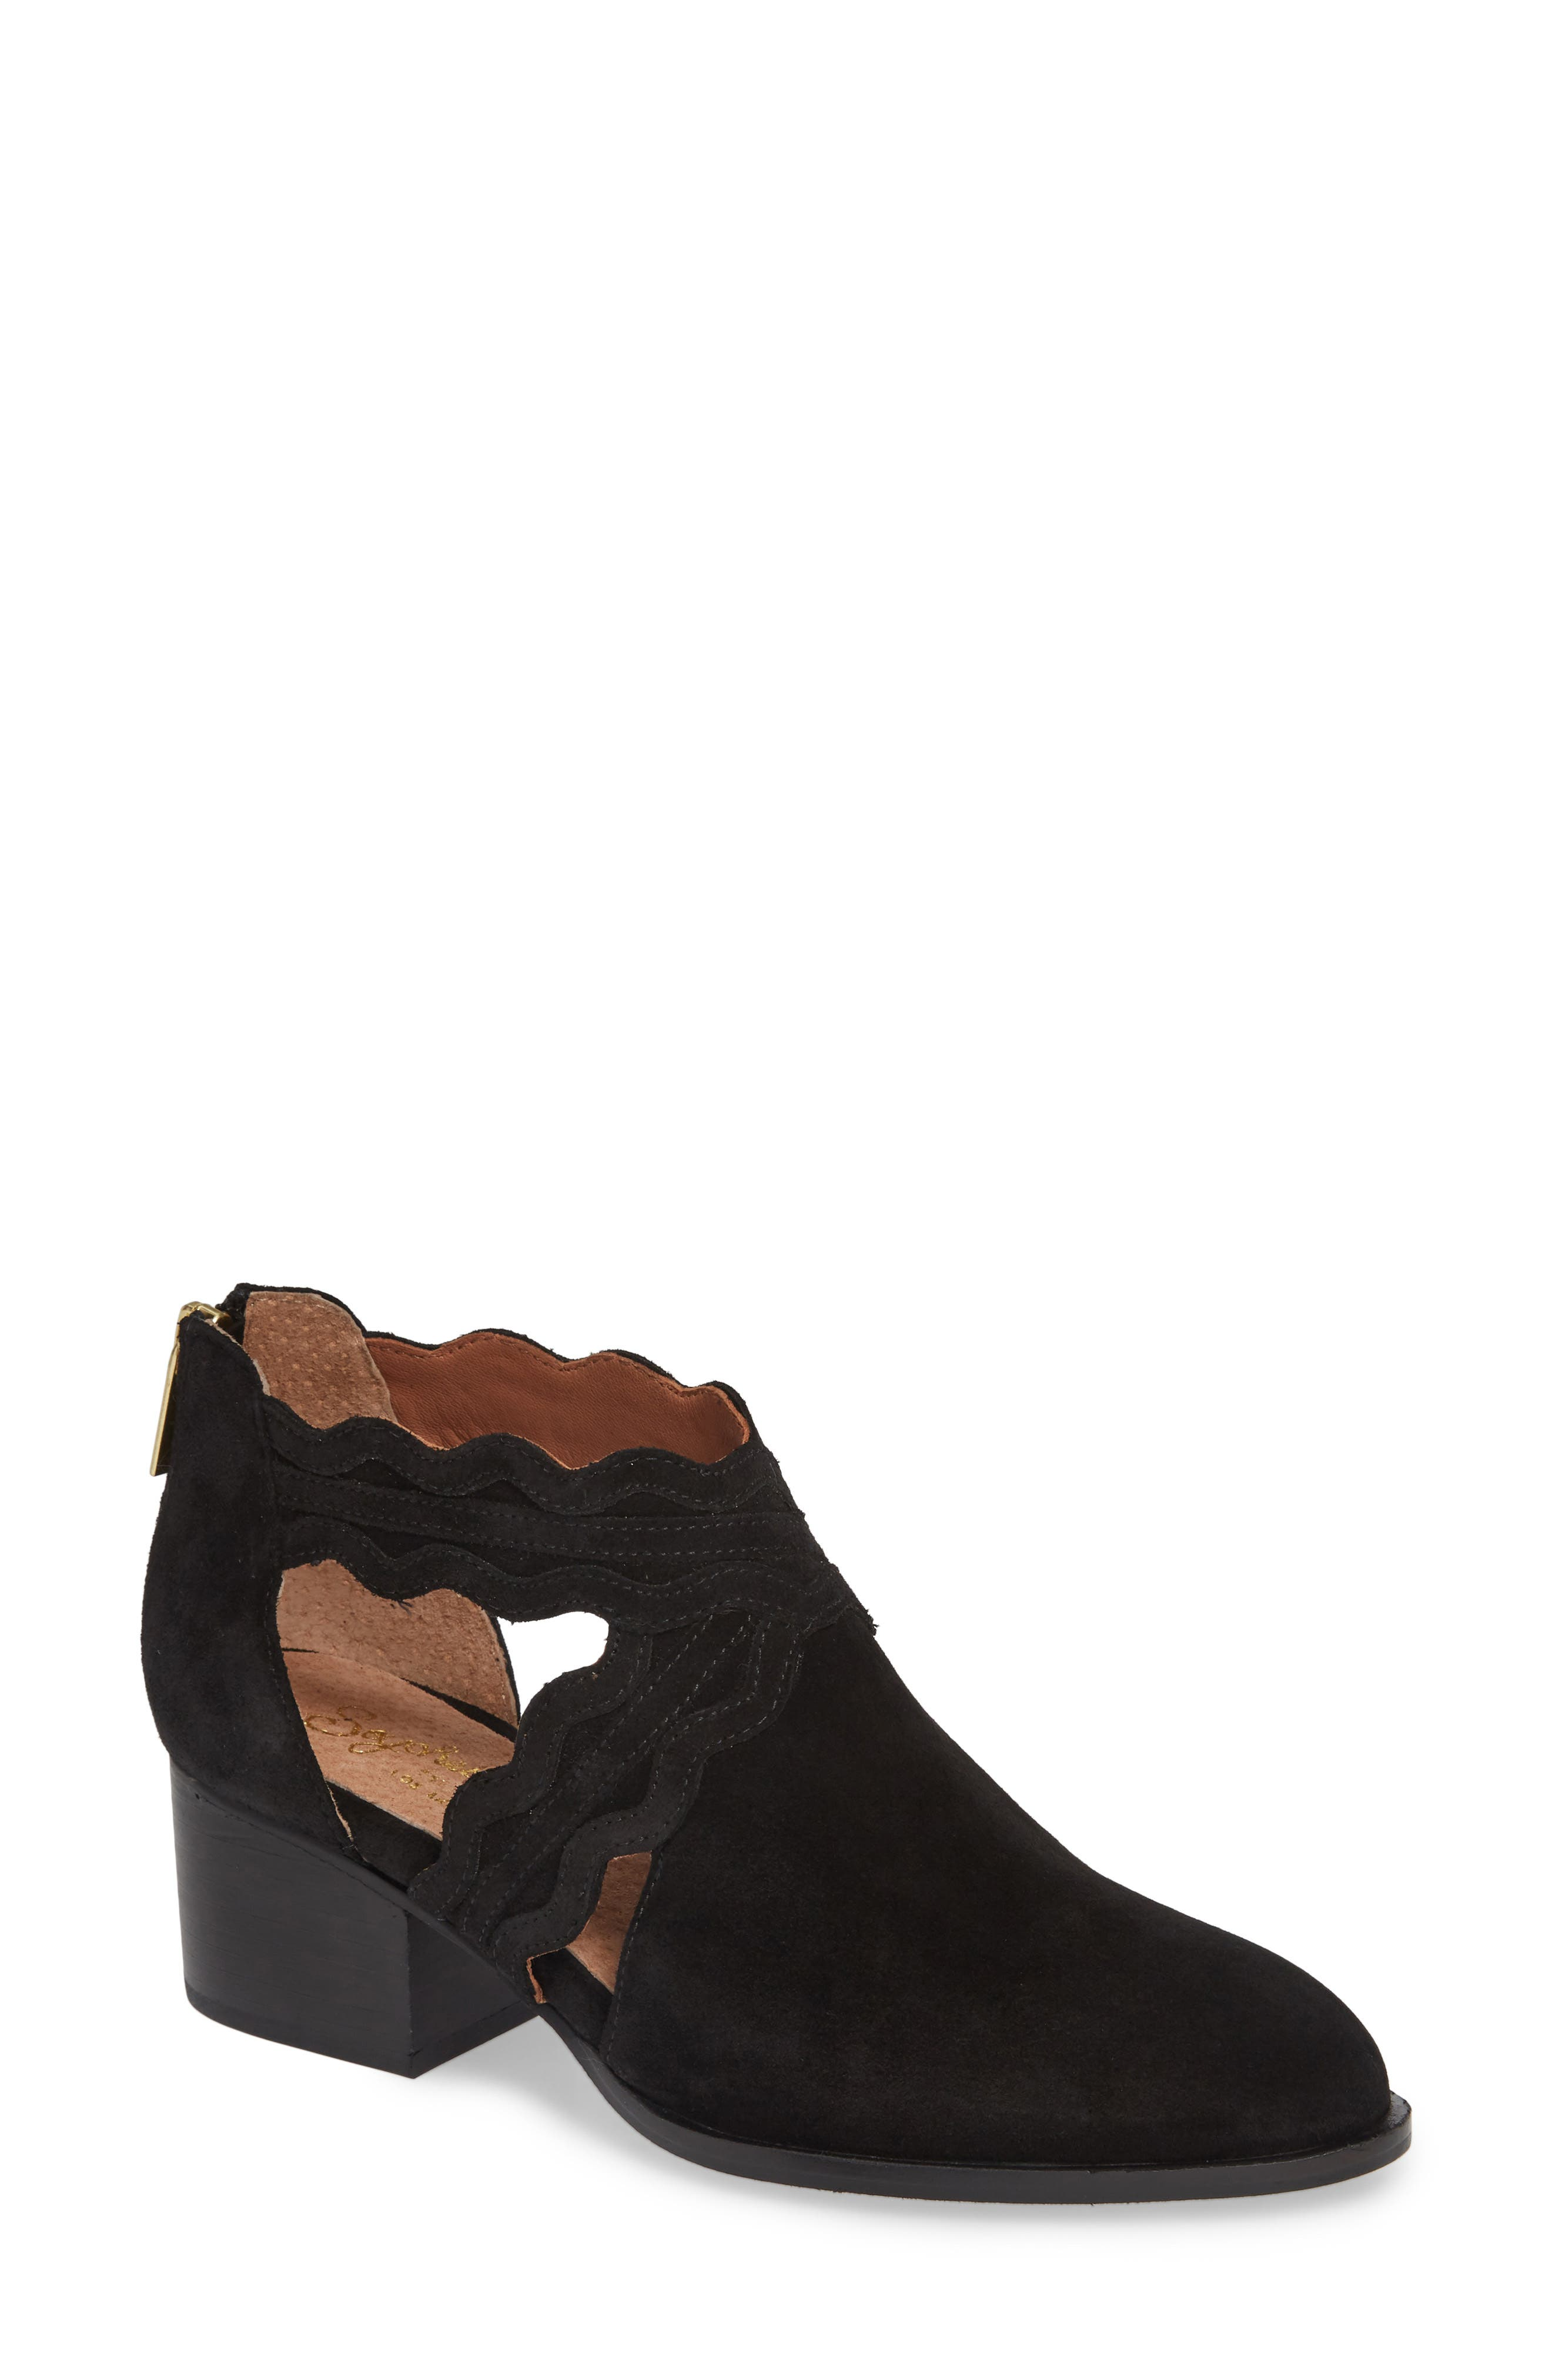 Seychelles All Together Bootie- Black